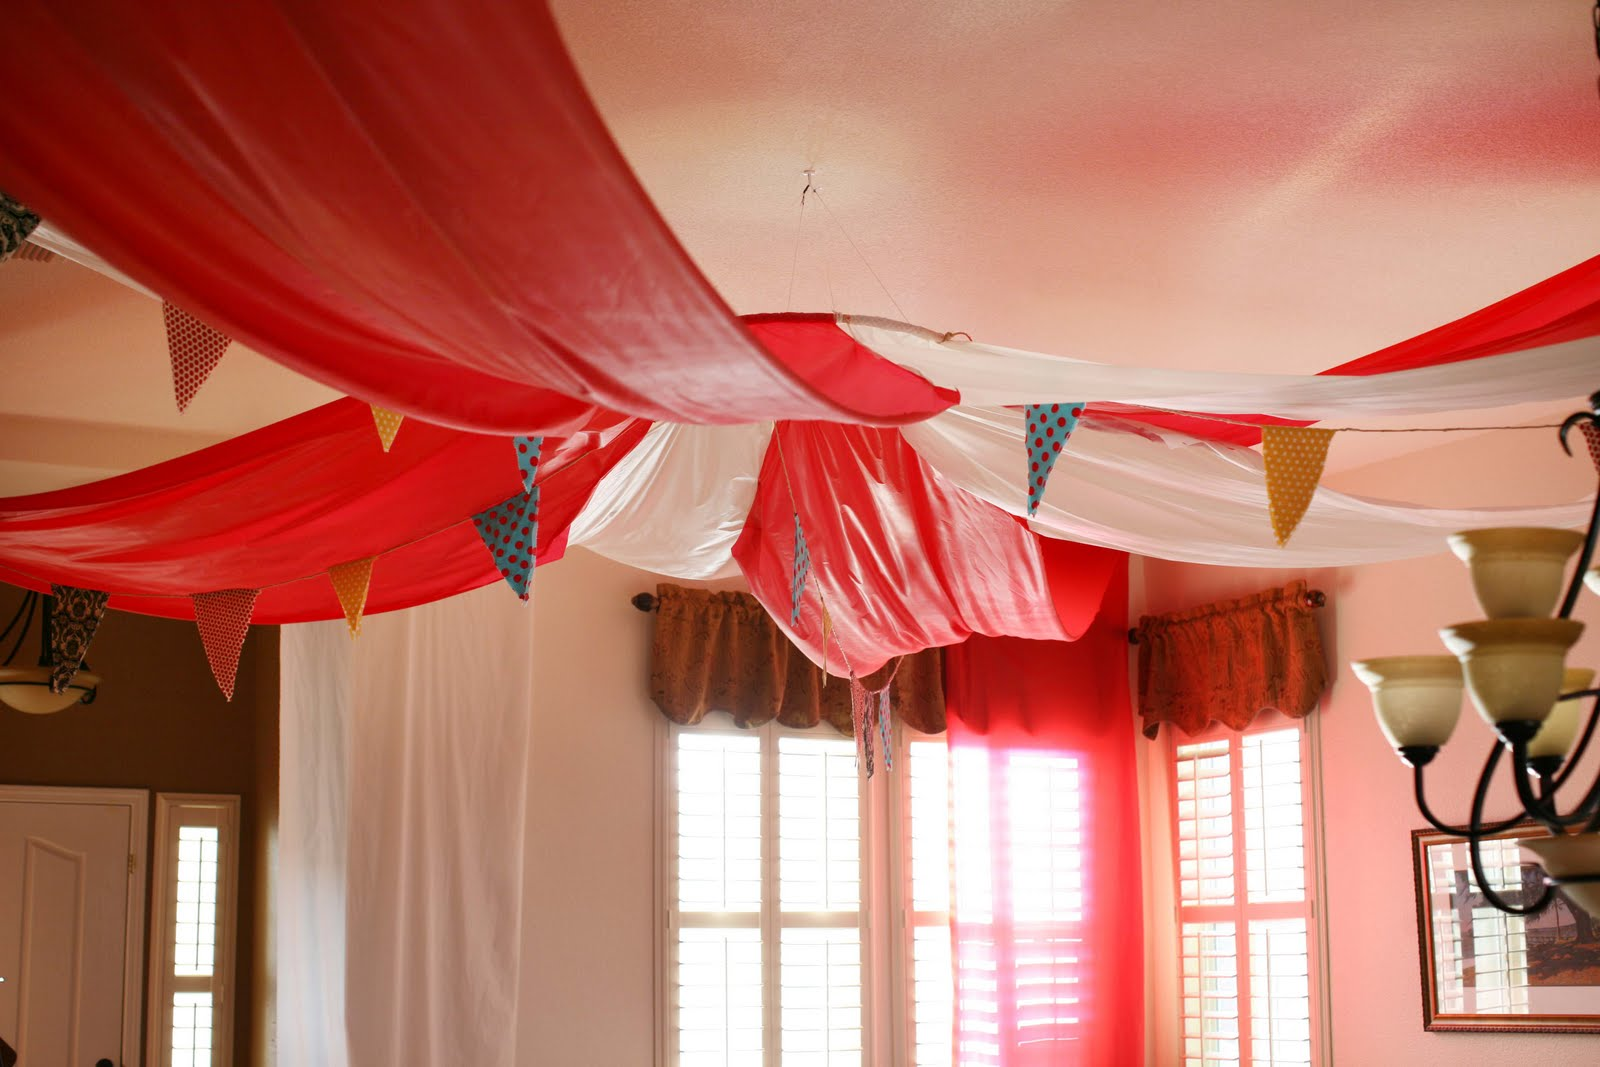 Beautiful Circus Tent Fabric 1600 x 1067 · 160 kB · jpeg